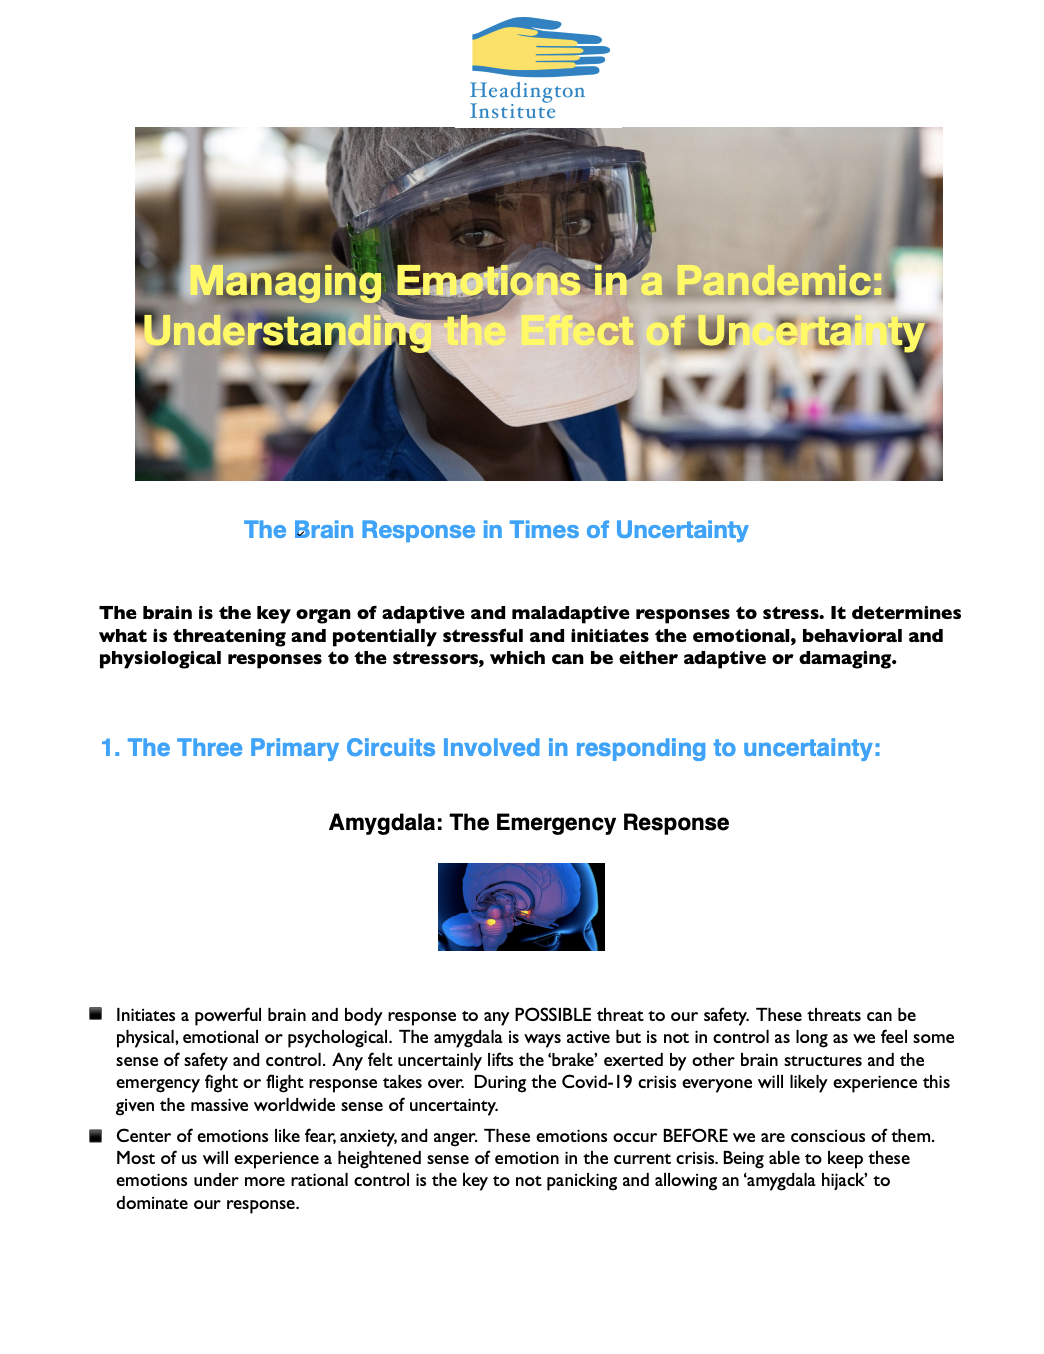 Managing Emotions in a Pandemic: Understanding the Effect of Uncertainty